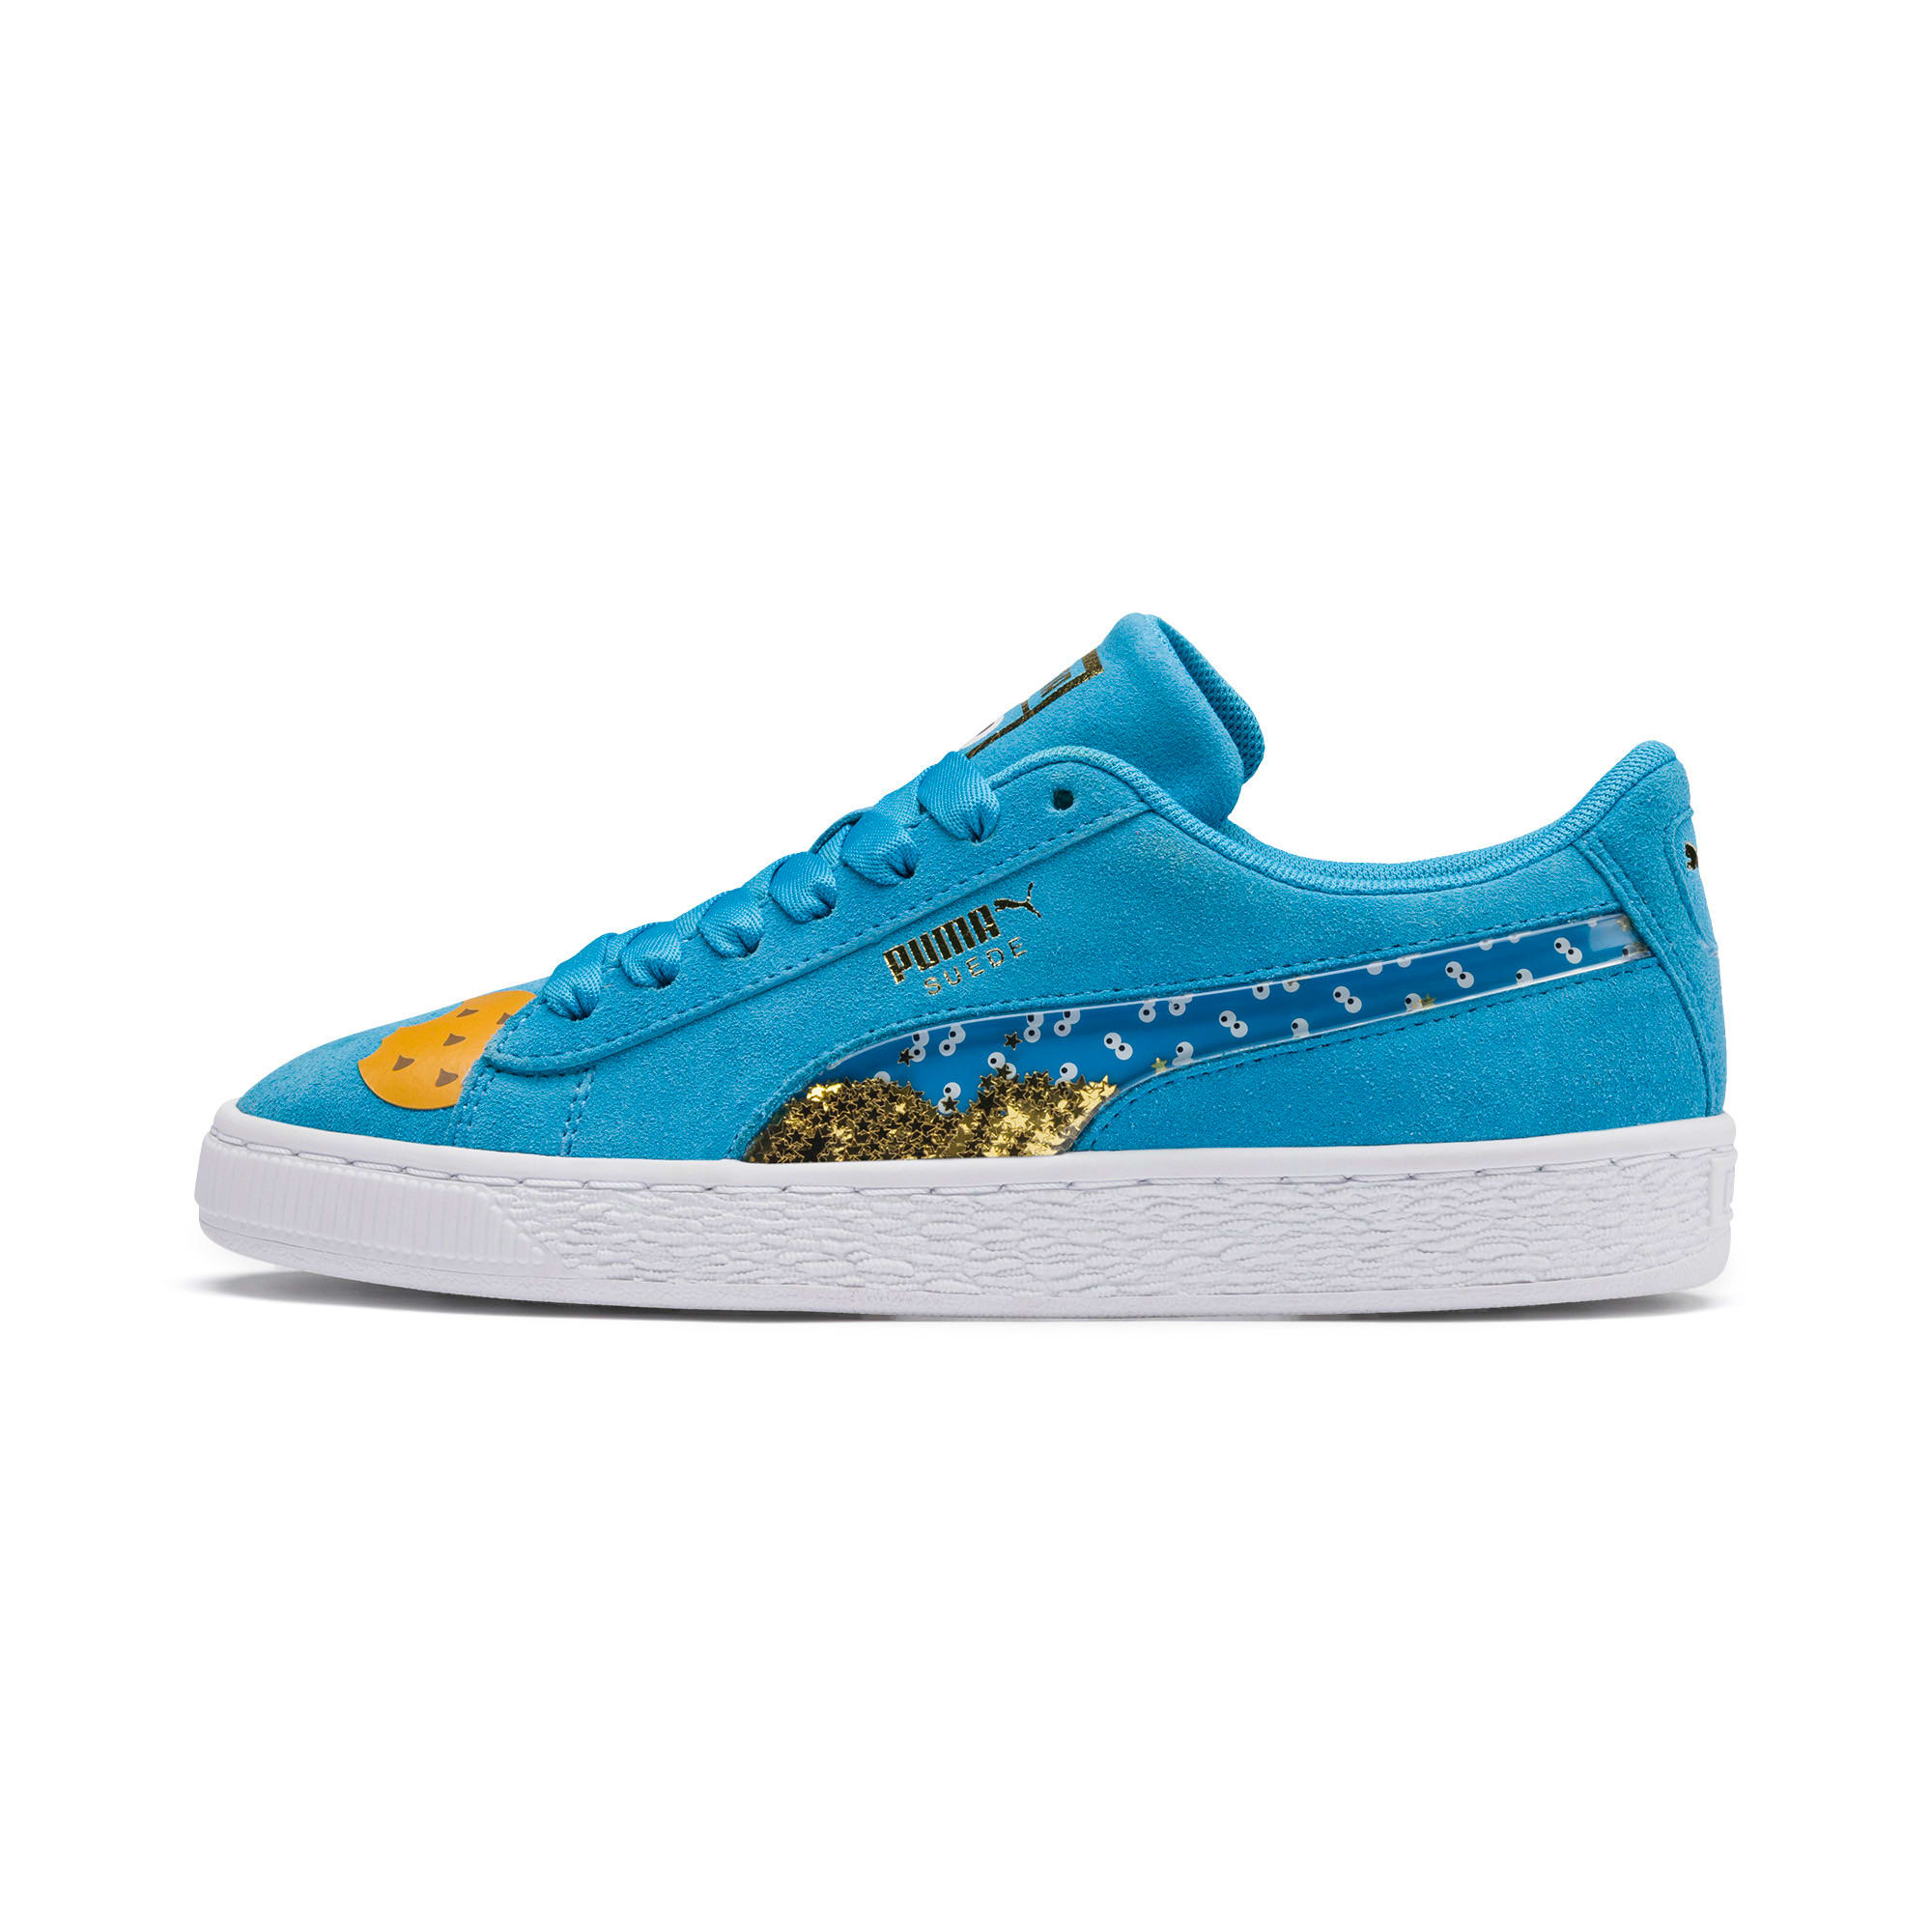 Thumbnail 1 of Sesamstraße 50 Suede Statement Youth Sneaker, Bleu Azur-Puma White, medium